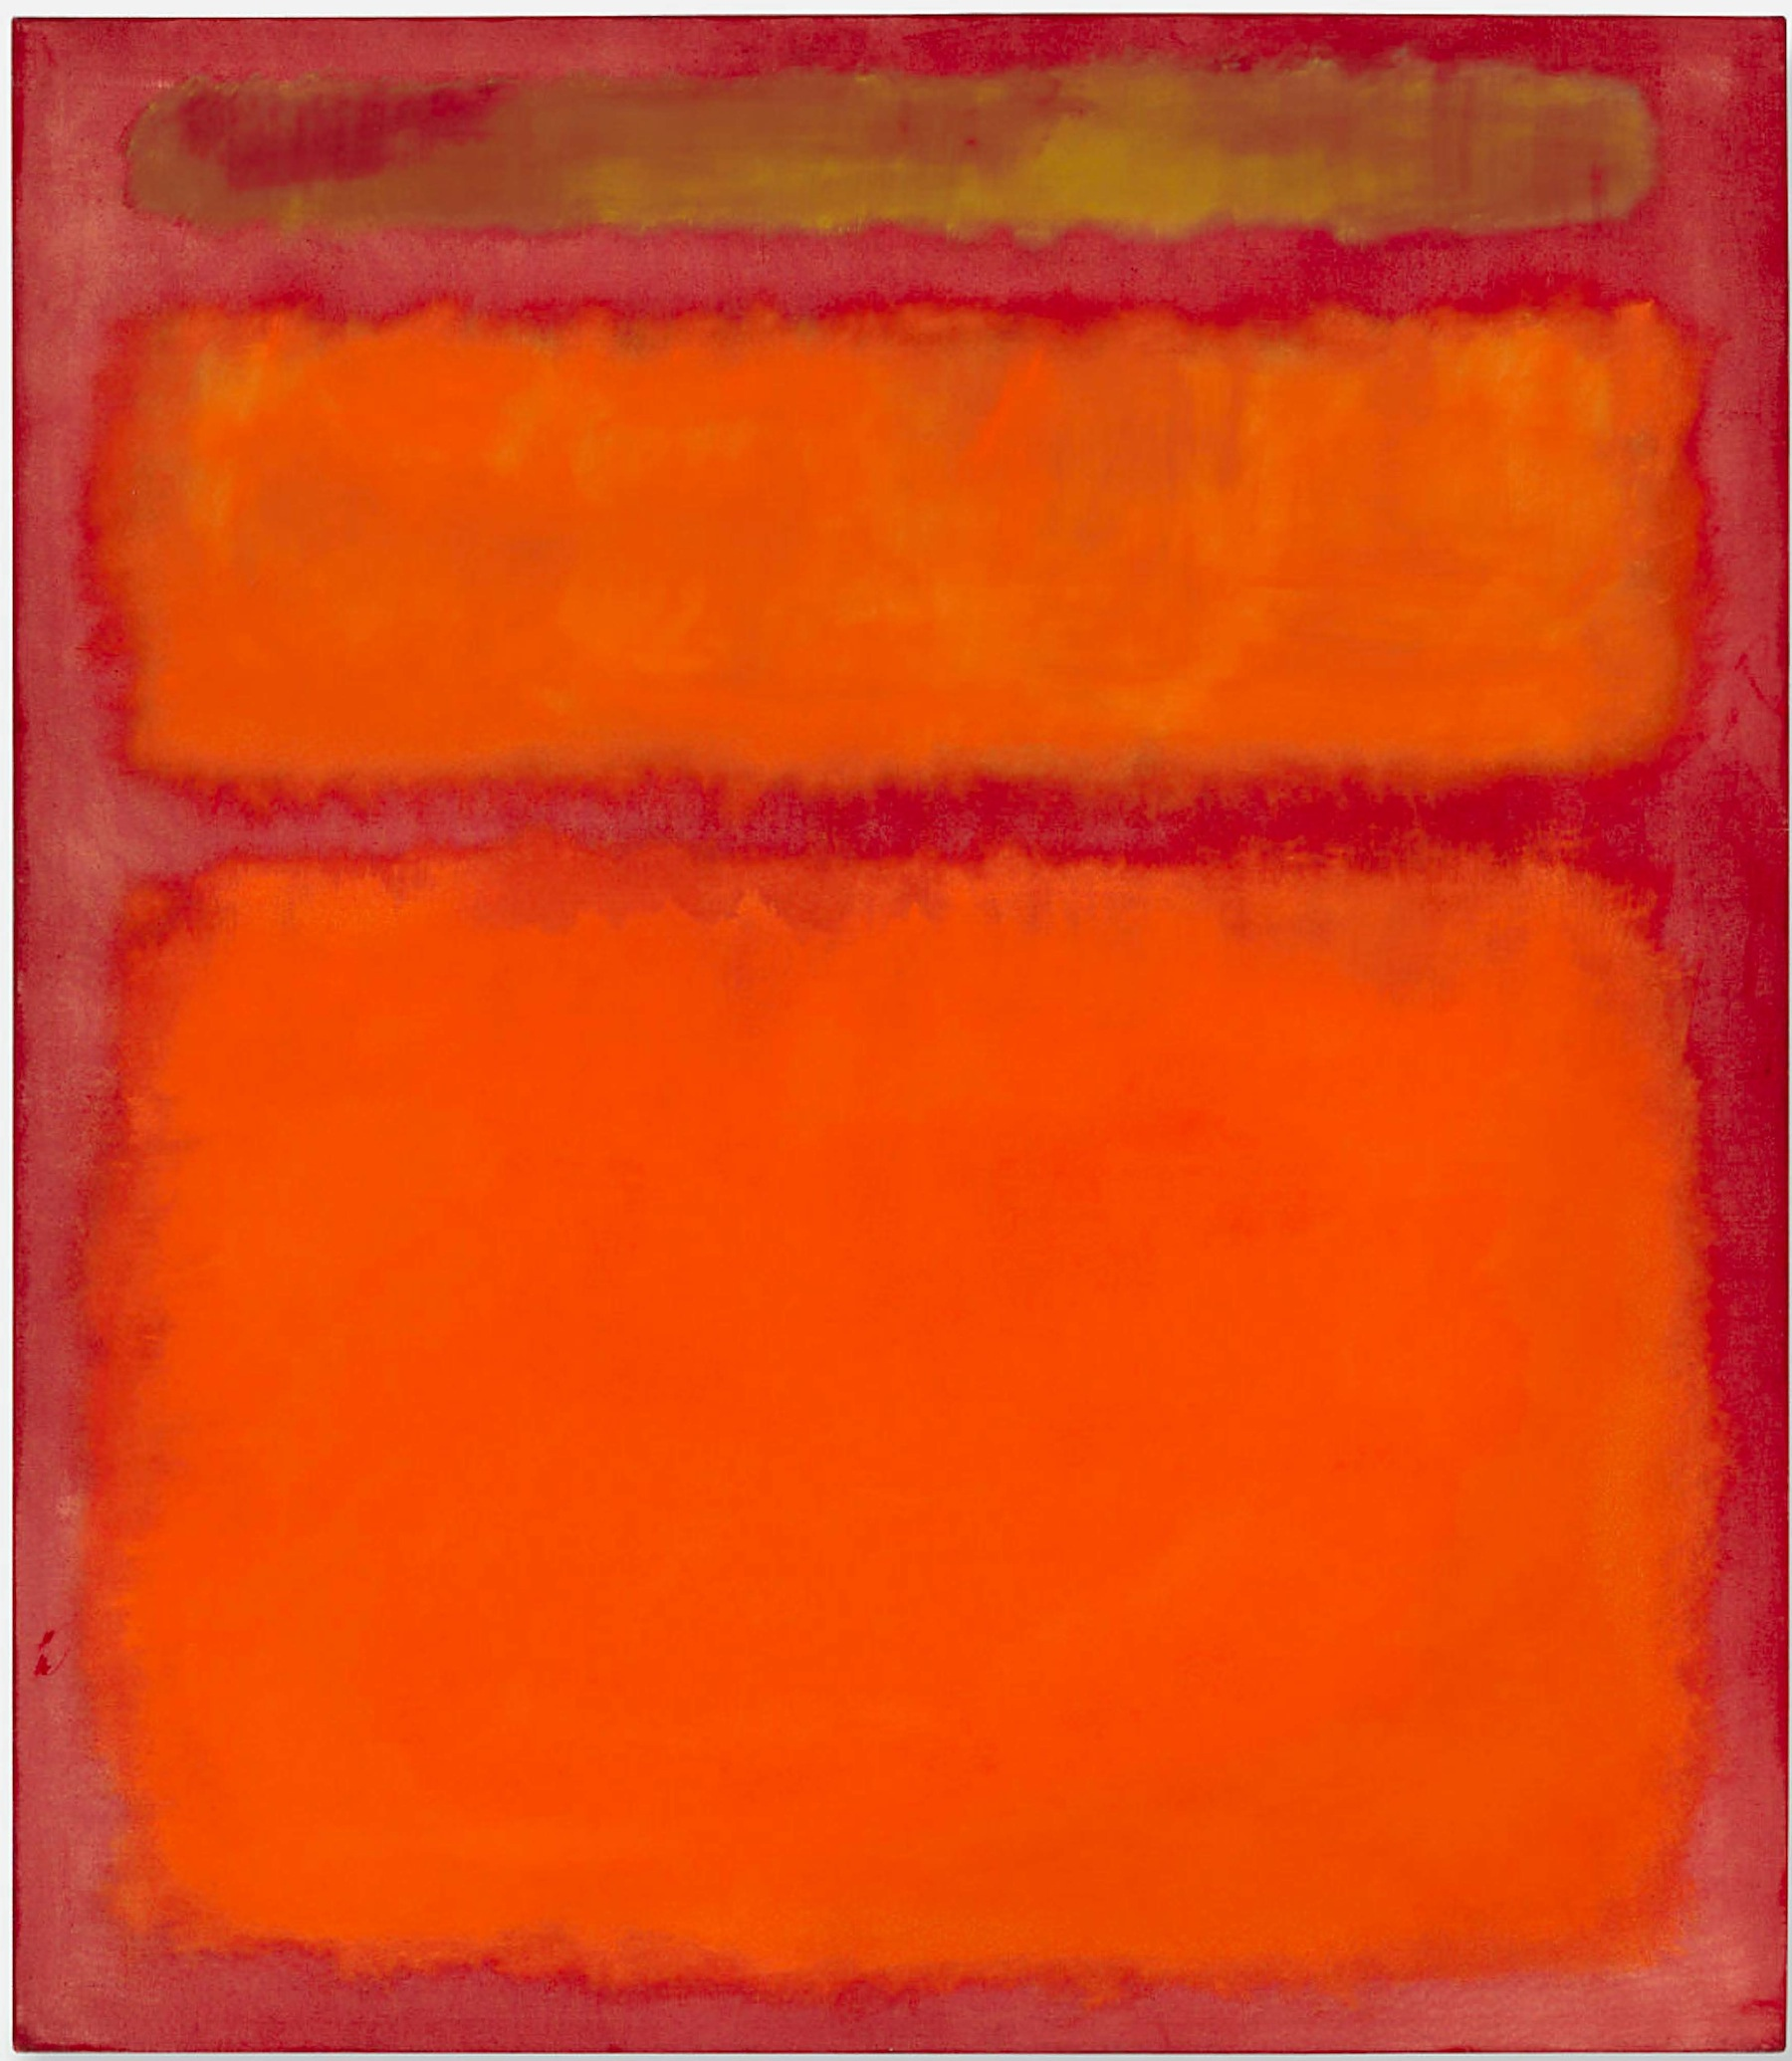 Orange, Red and Yellow by Mark Rothko, 1961